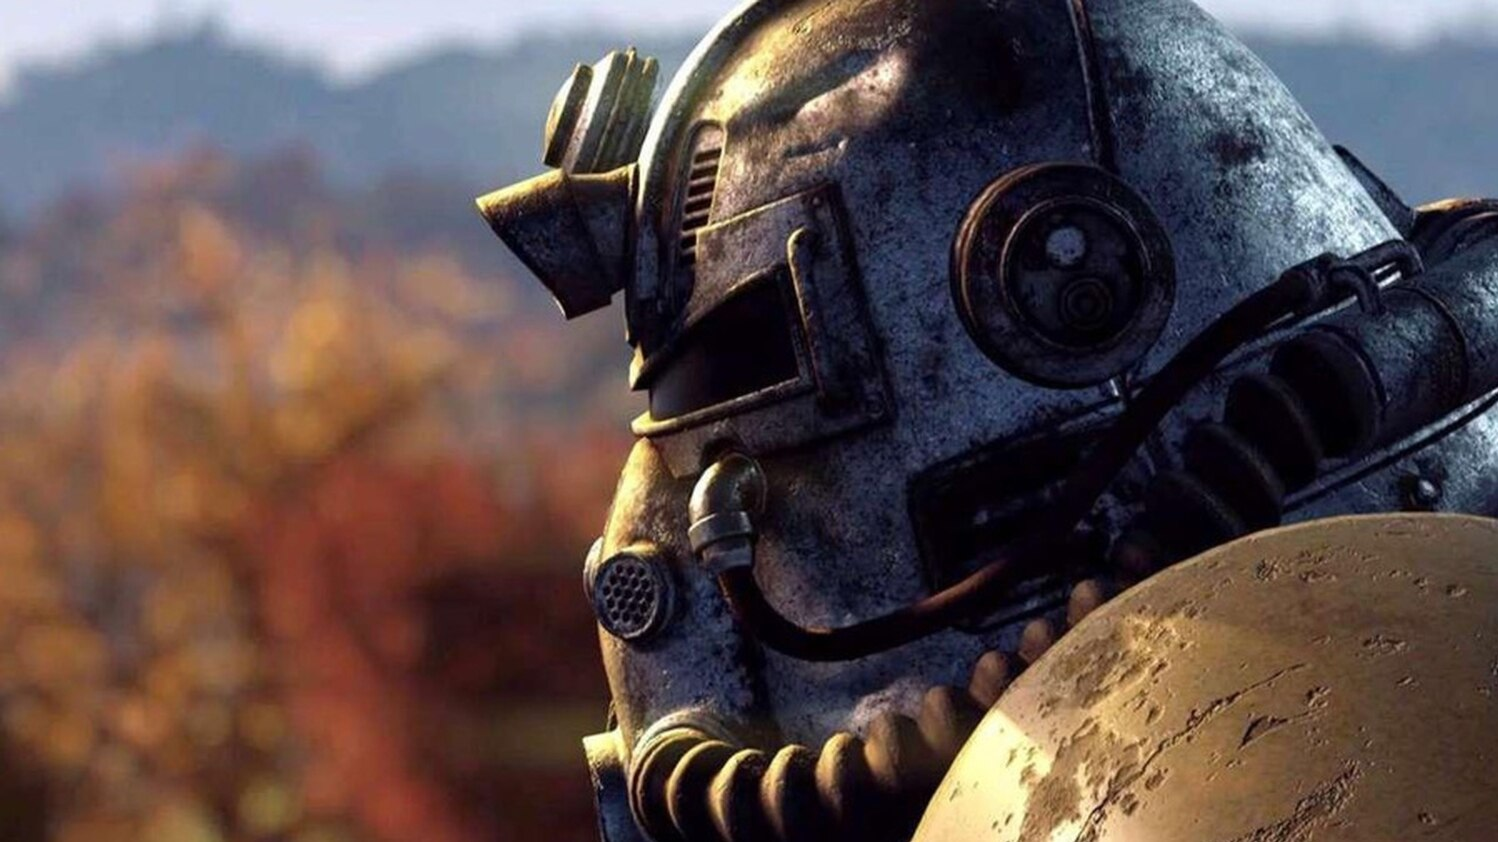 Fallout 76 Group's Raid Attempt Foiled By Notorious Power Armour Glitch